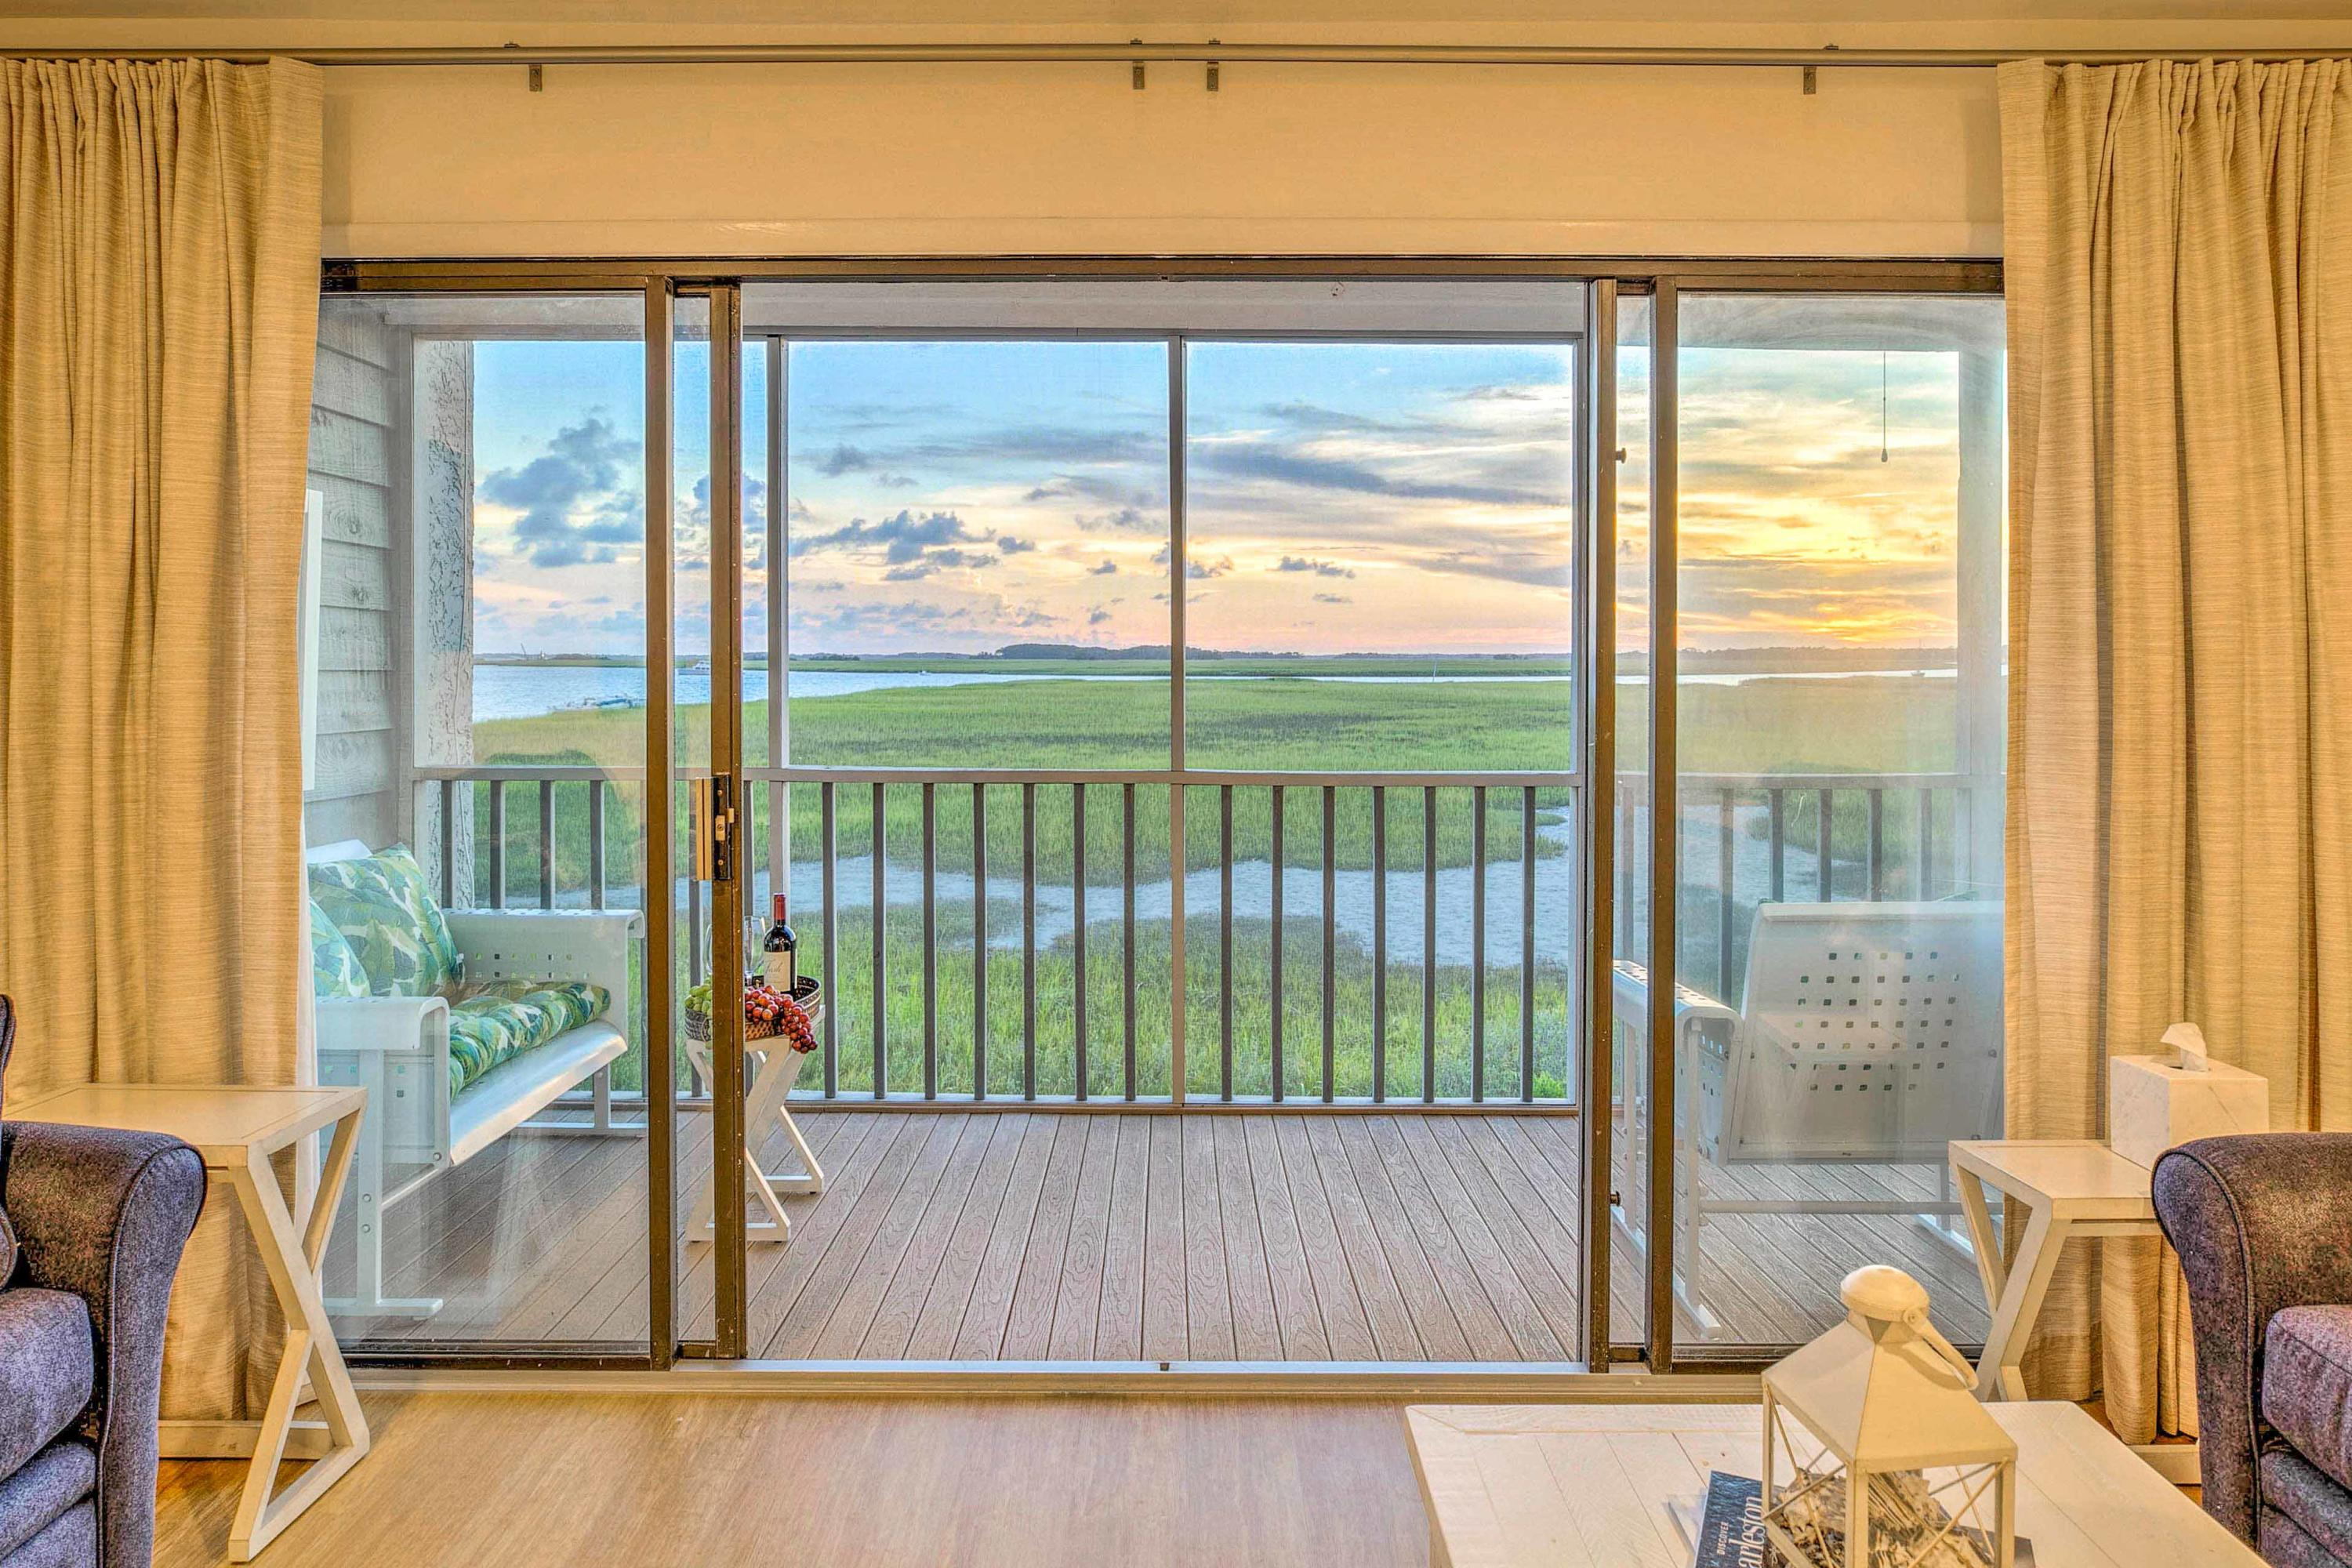 Mariners Cay Homes For Sale - 93 Mariners Cay, Folly Beach, SC - 25